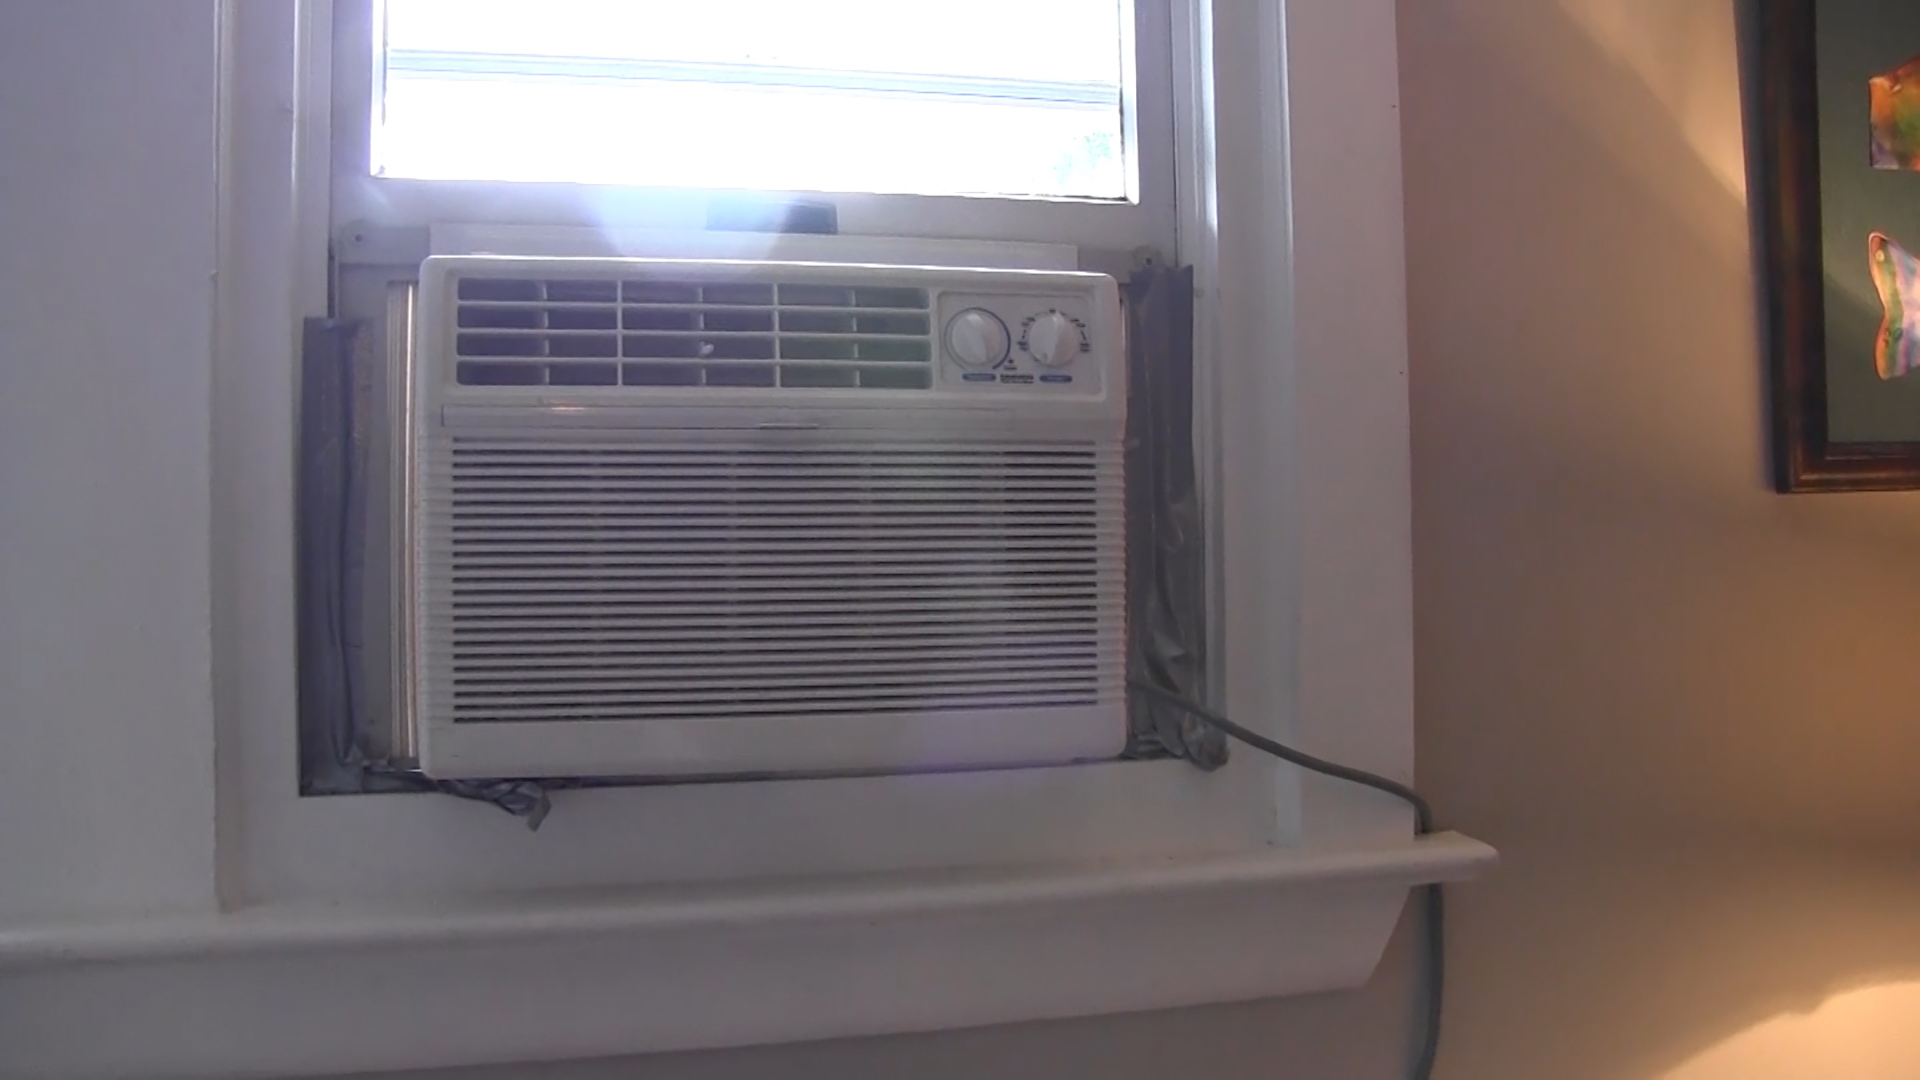 More From Consumer Reports. Could Your Air Conditioner ...